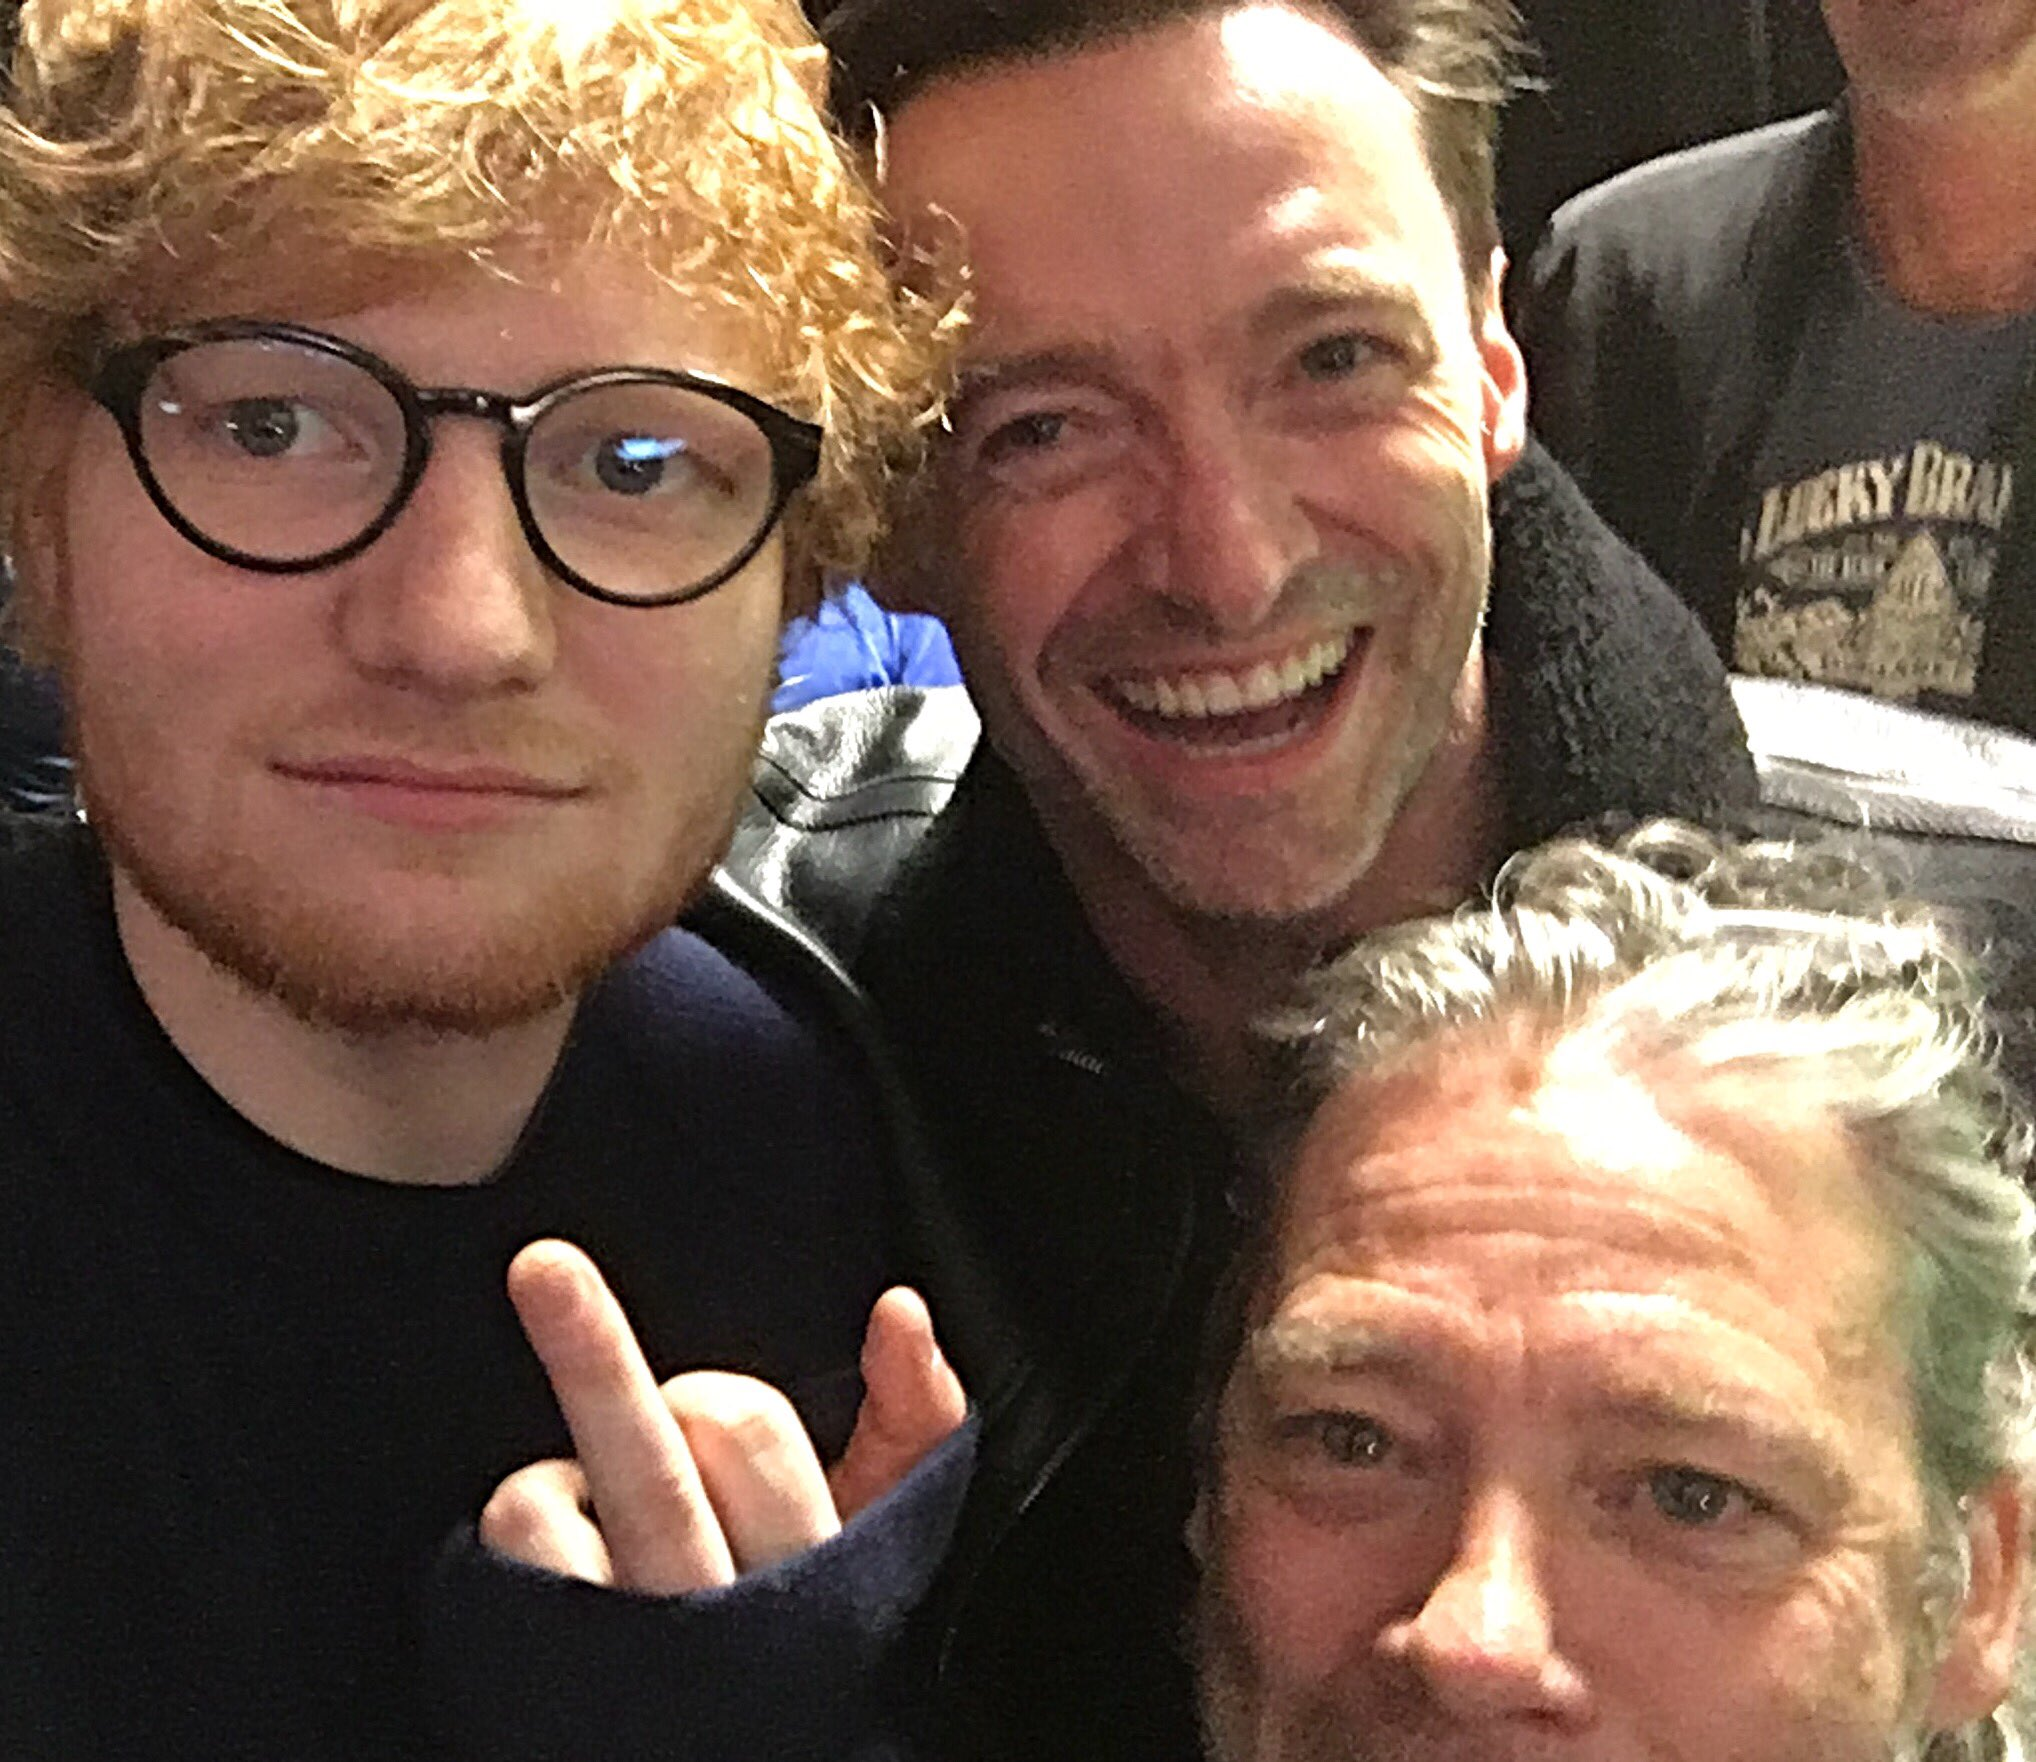 So @Dexfletch and I are minding our business when ... @edsheeran https://t.co/84tG6ihMJq